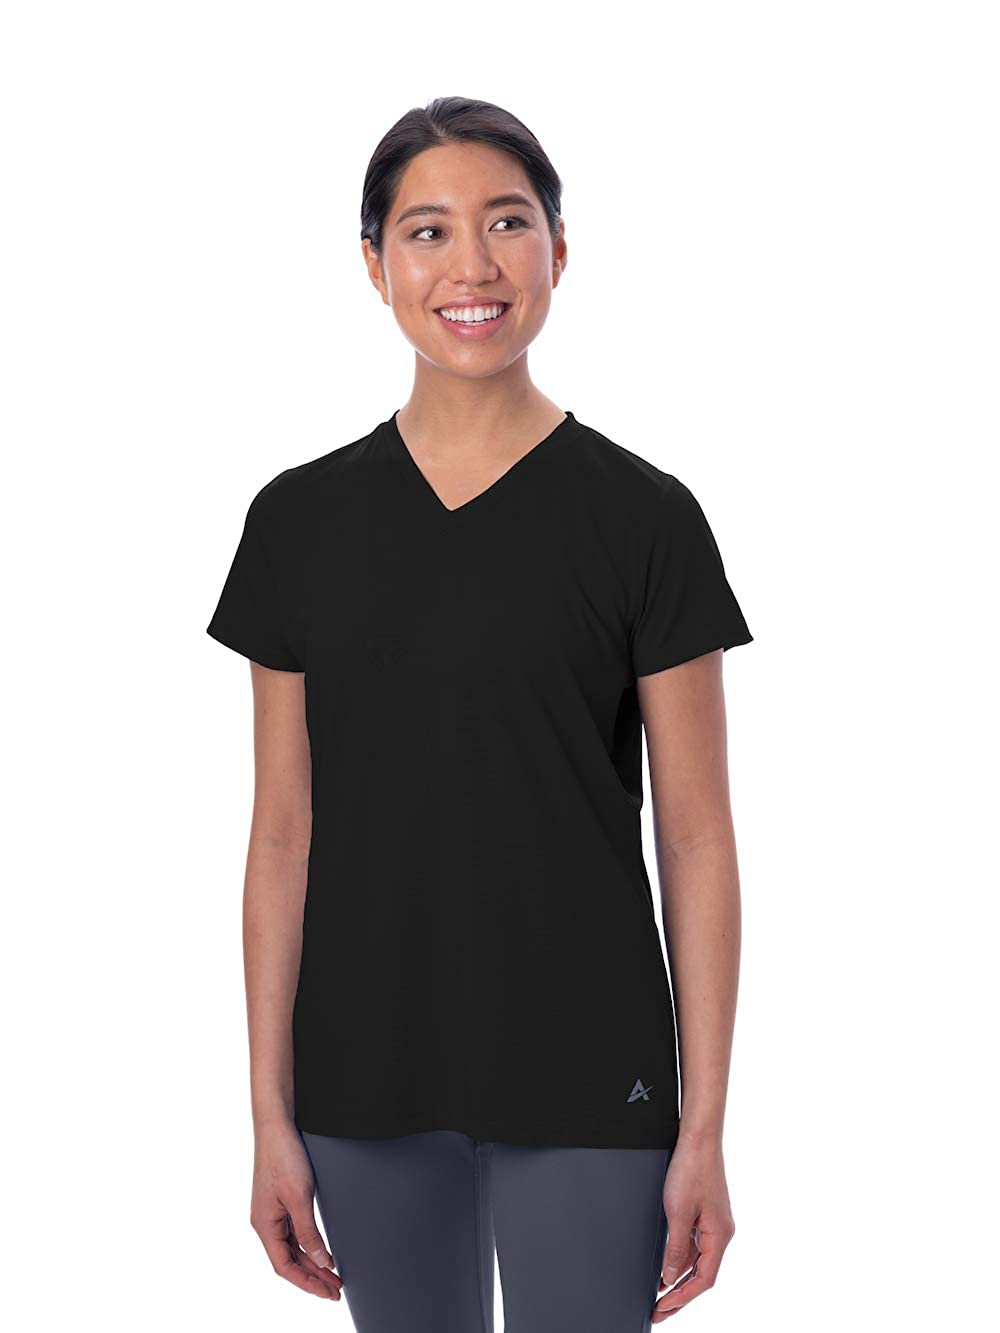 Arctic Cool Women's Instant Cooling Short Sleeve V-Neck Shirt